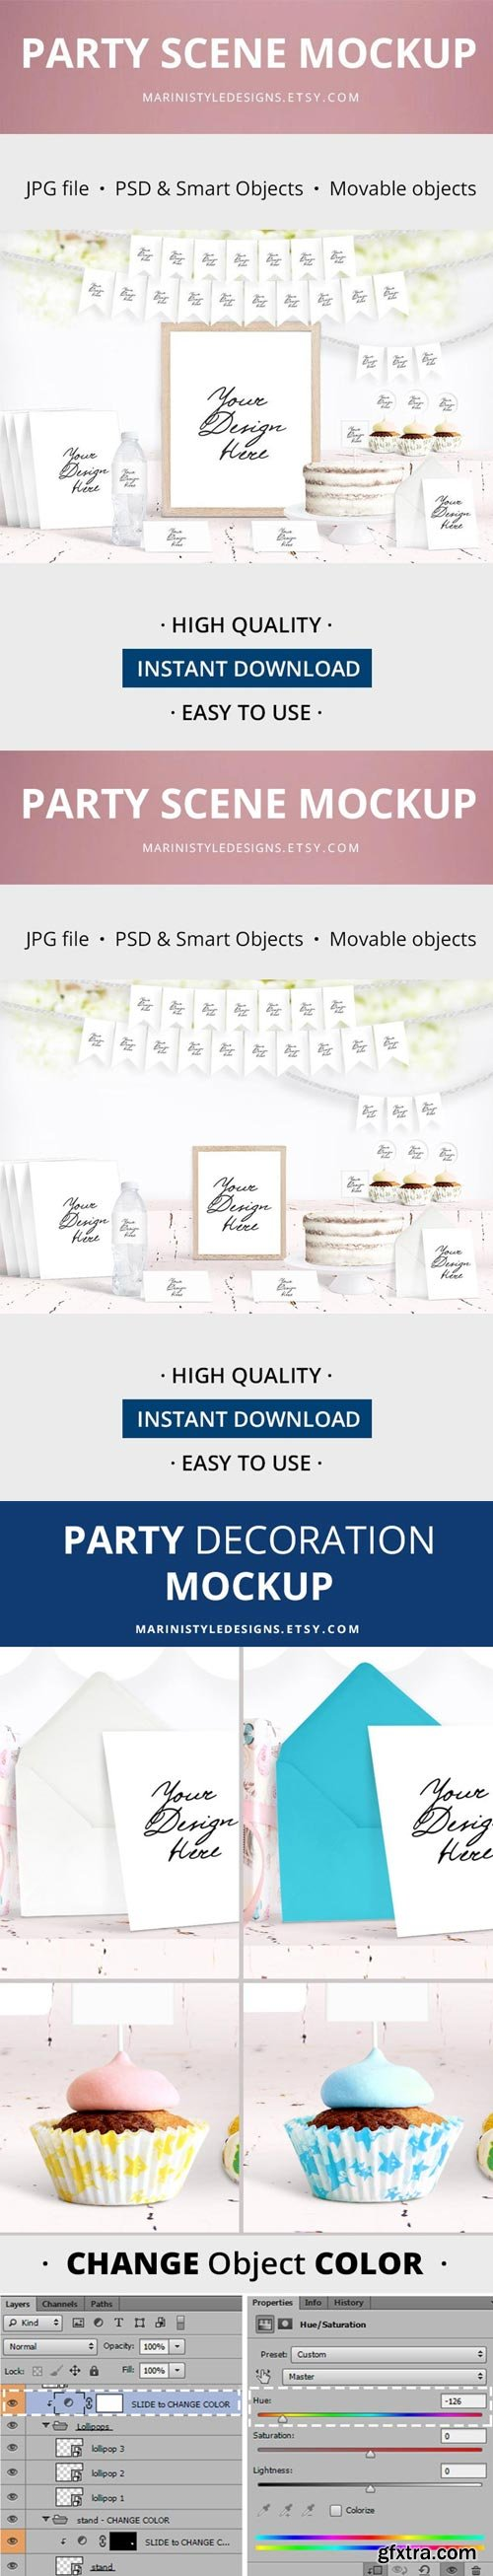 Etsy - Party Scene Creator Mockup, Birthday & Baby Shower Mockup